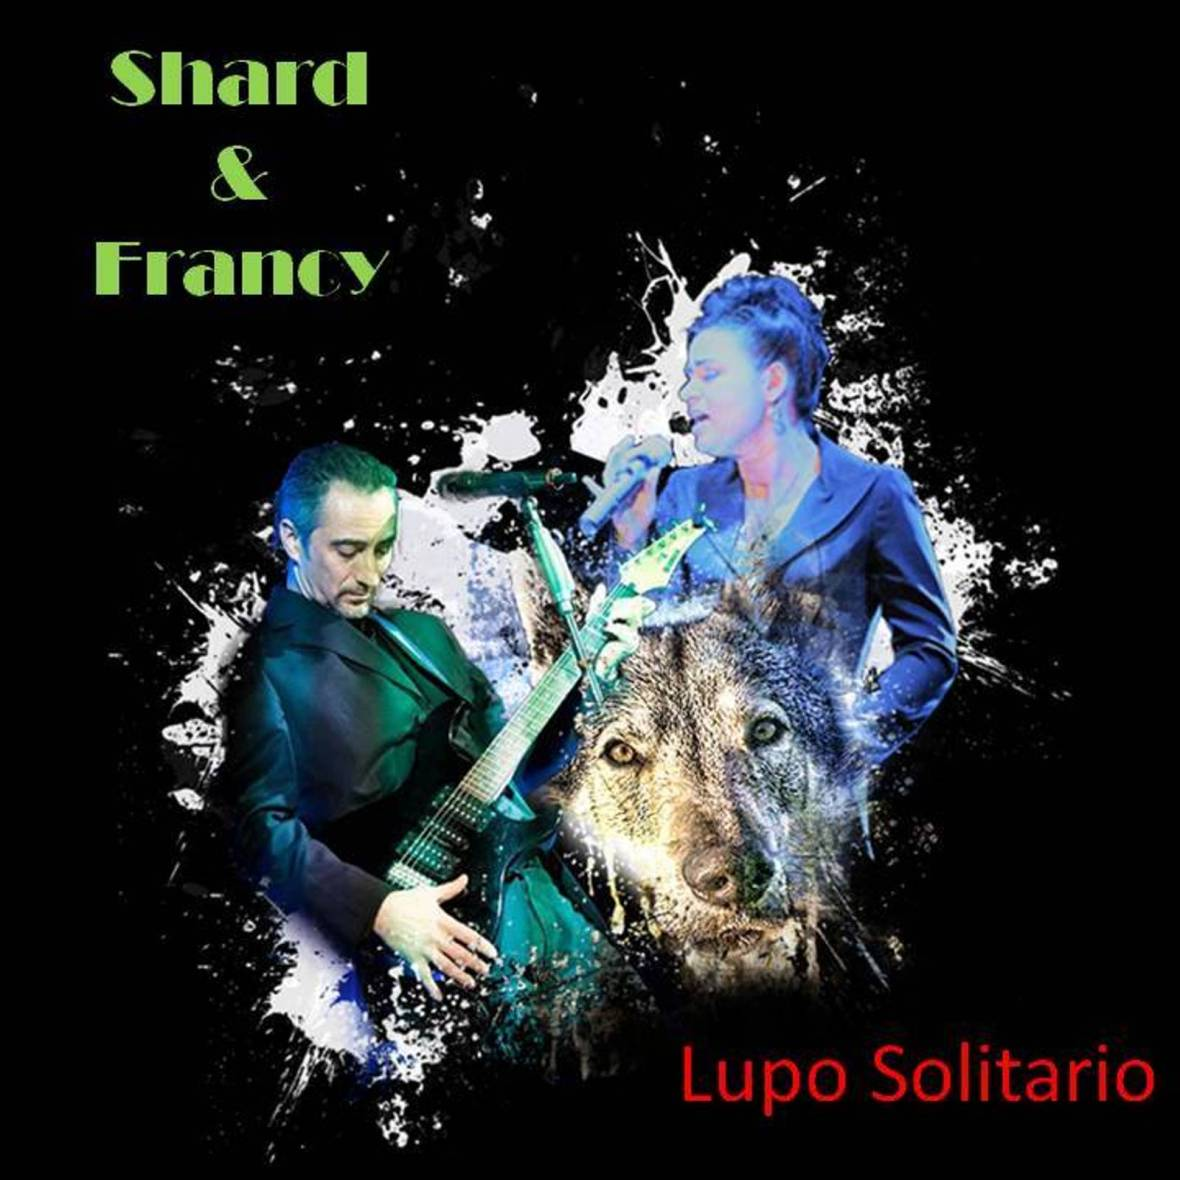 Cover Lupo solitario Shard & Francy2